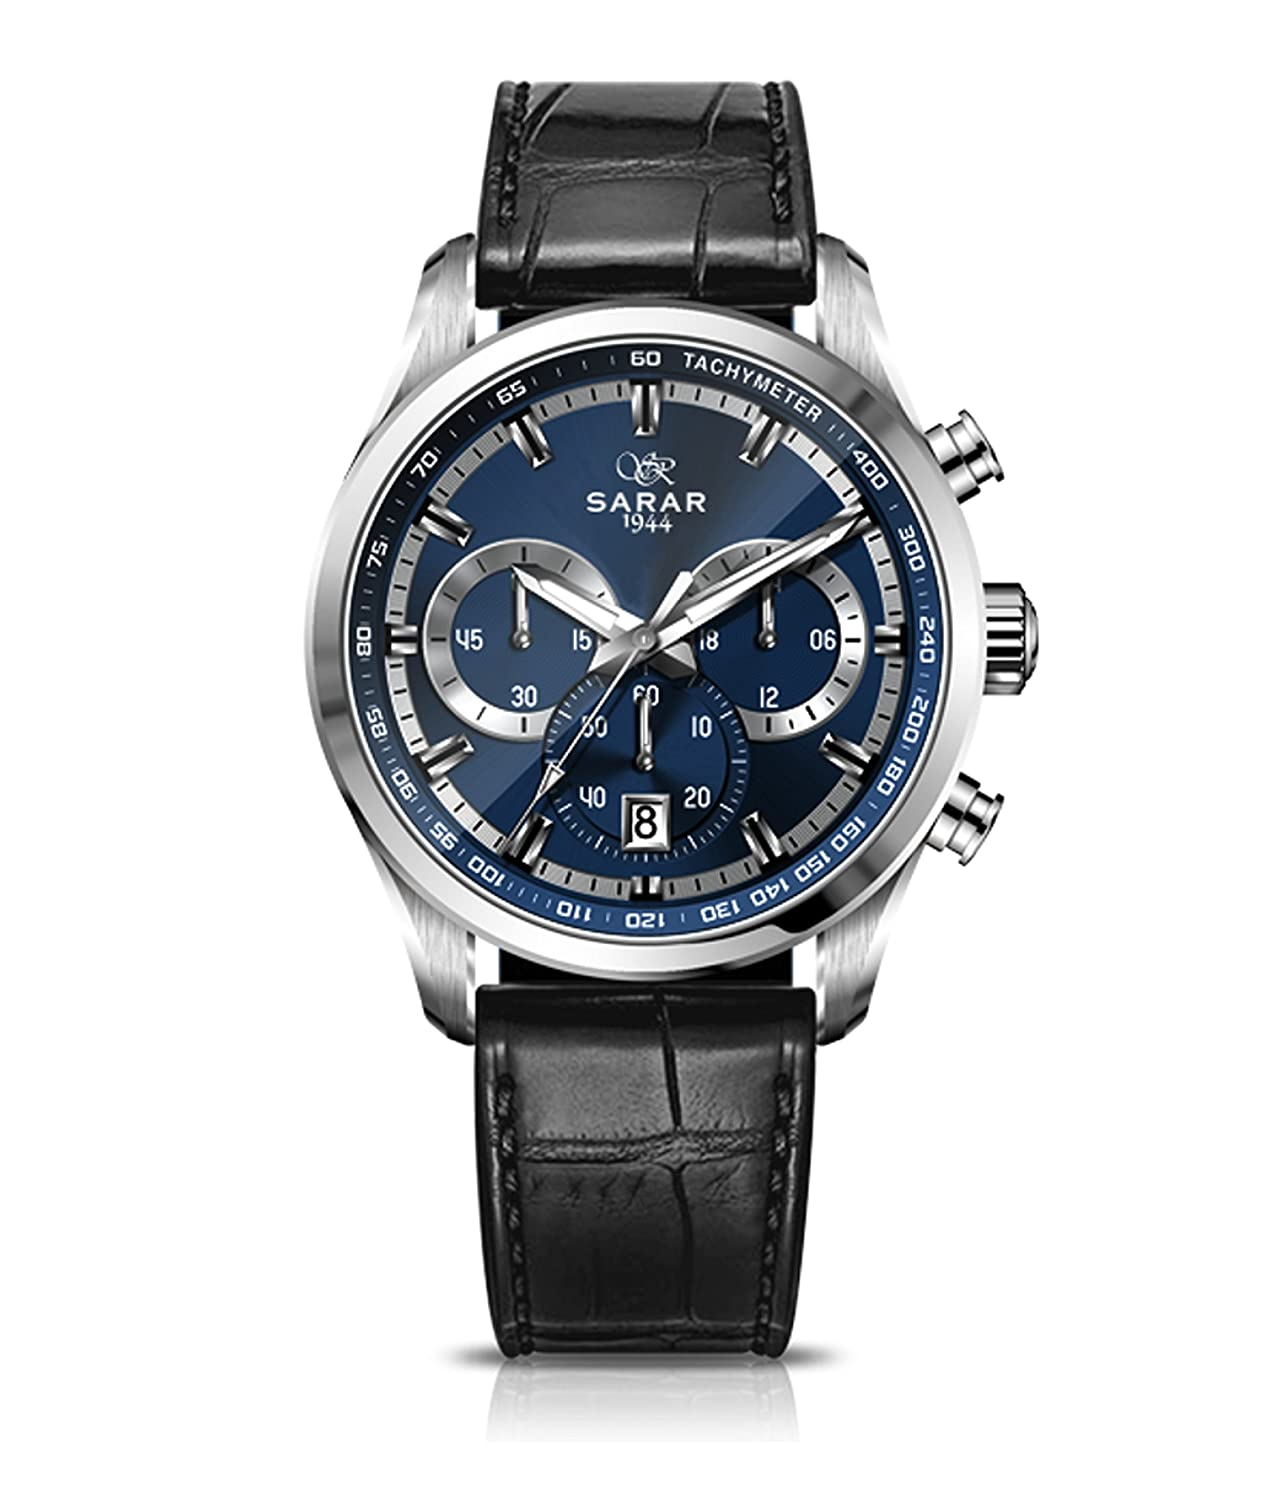 SARAR-TIME Deep-Blue Chronograph SR-1110 Echtleder